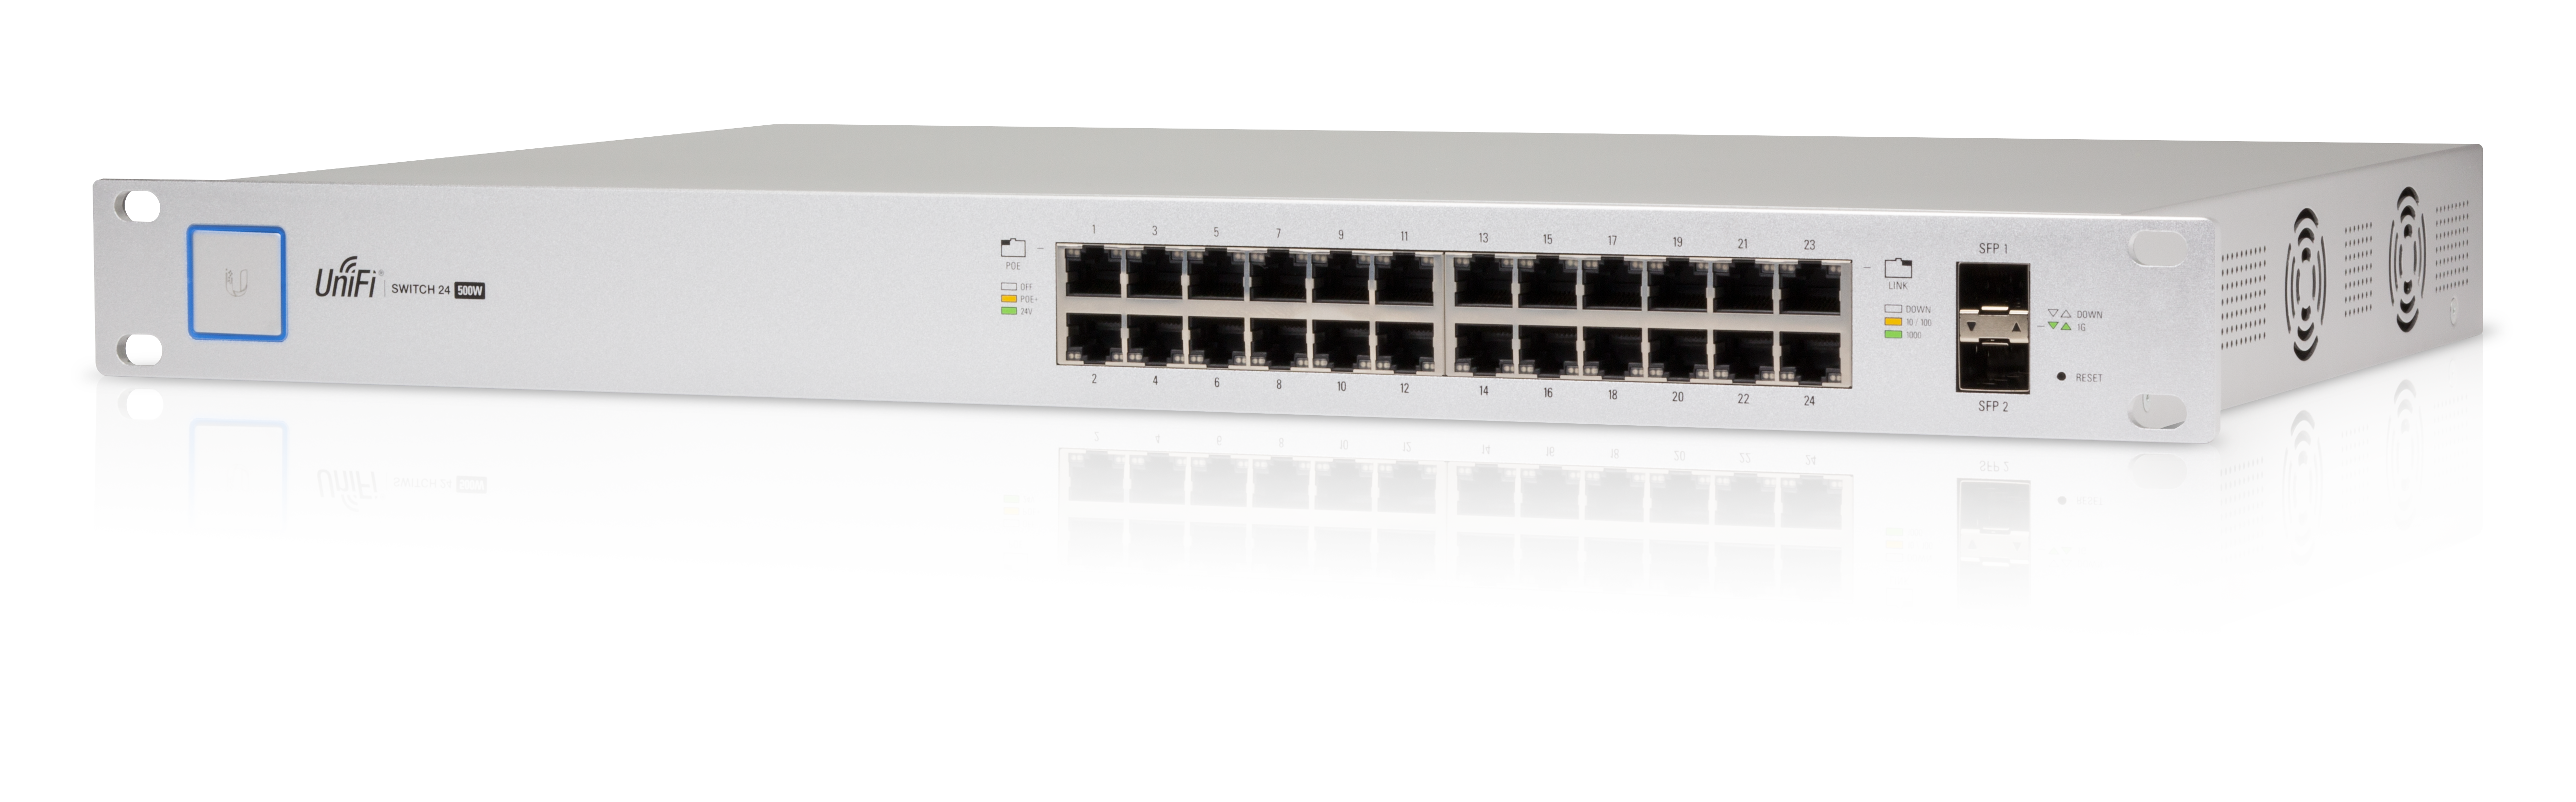 Ubiquiti UniFi Switch US-24-500W